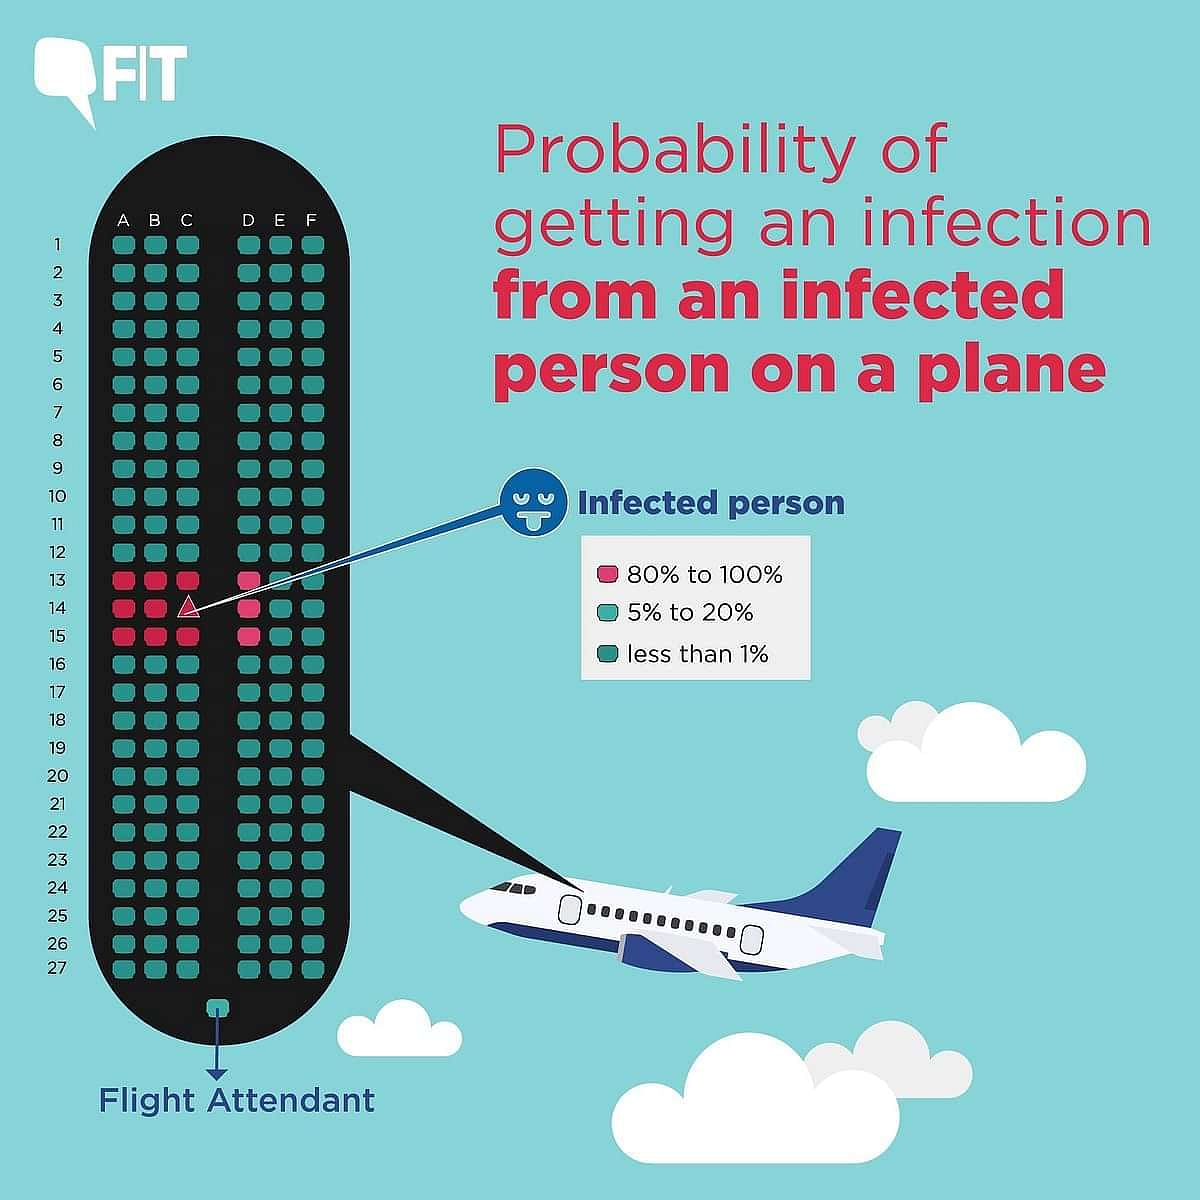 FAQ: What Happens If a Co-passenger Tests Positive for COVID-19?